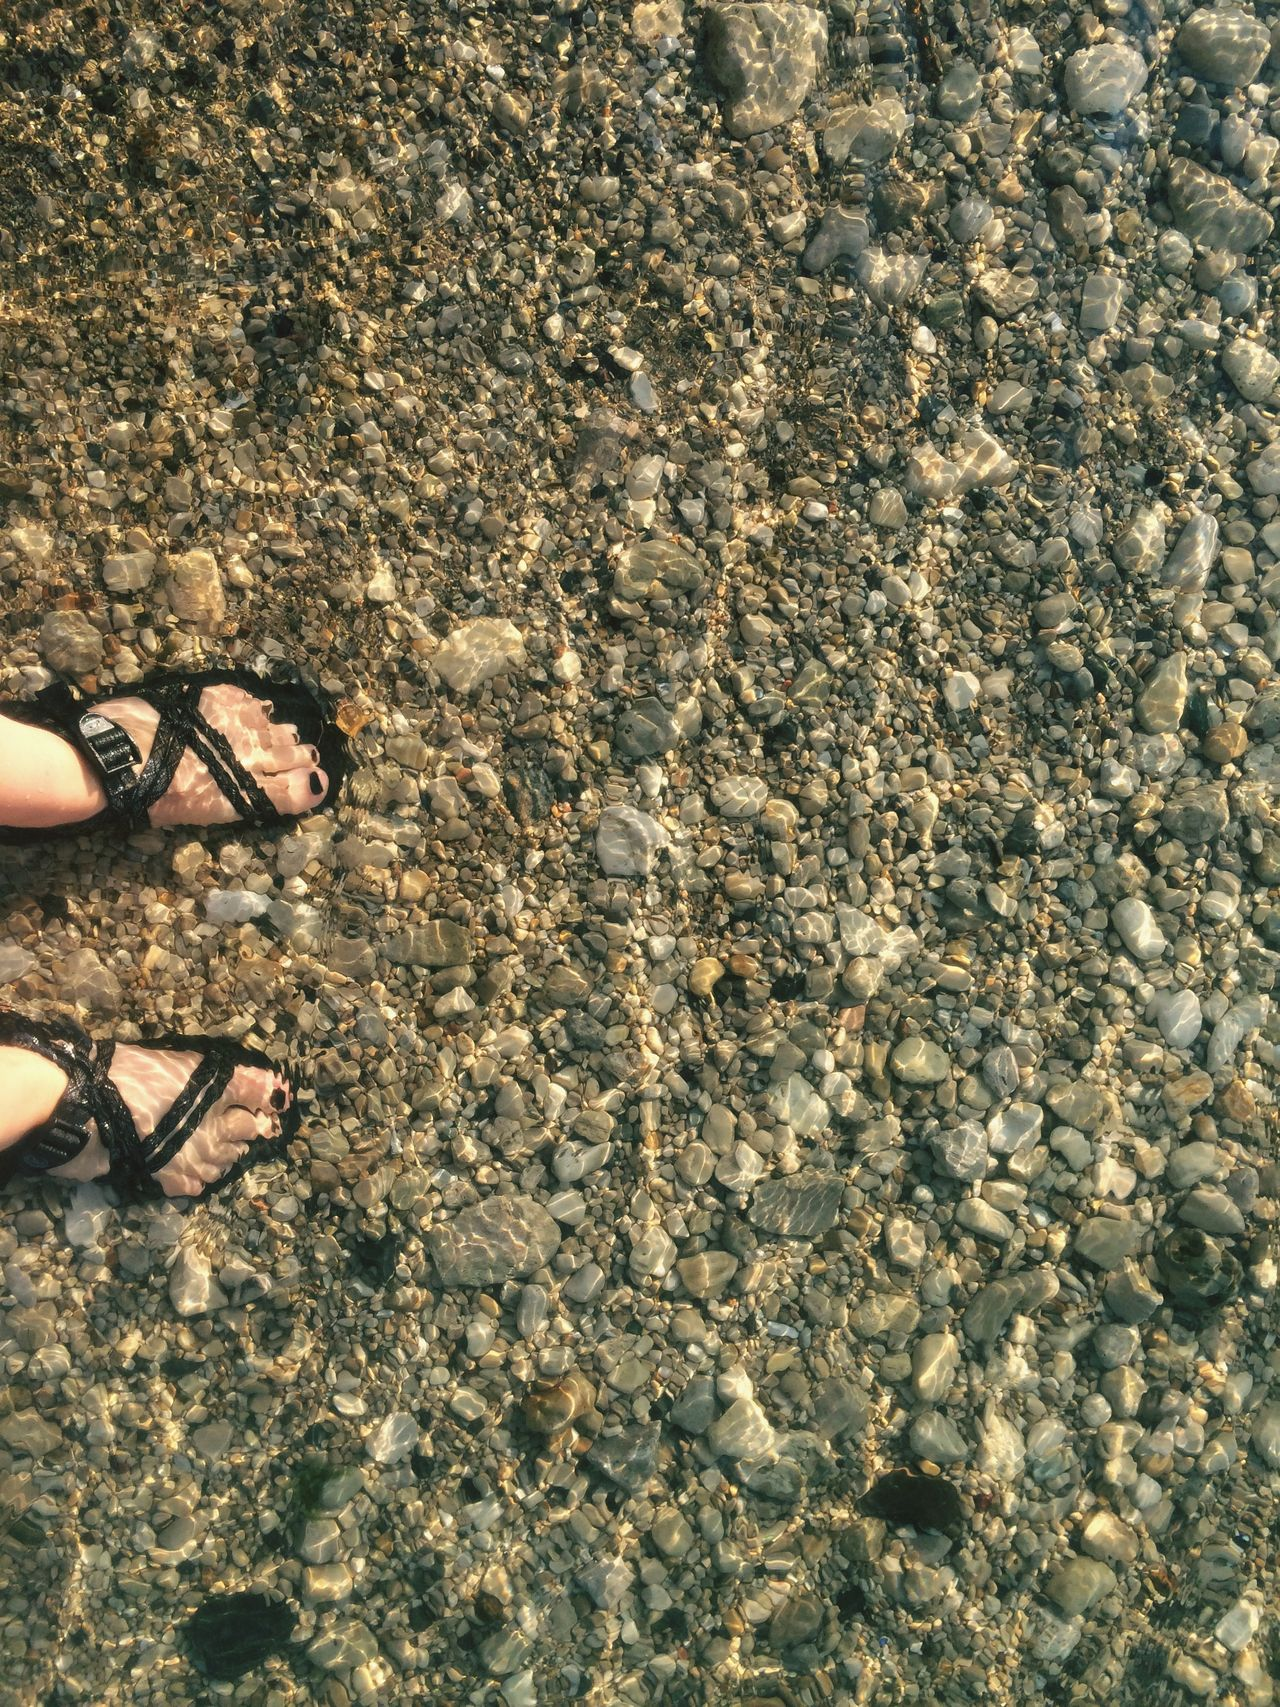 Chacos Lake Huron Feet Rocks Freezing Cold Water Northern Michigan U.P